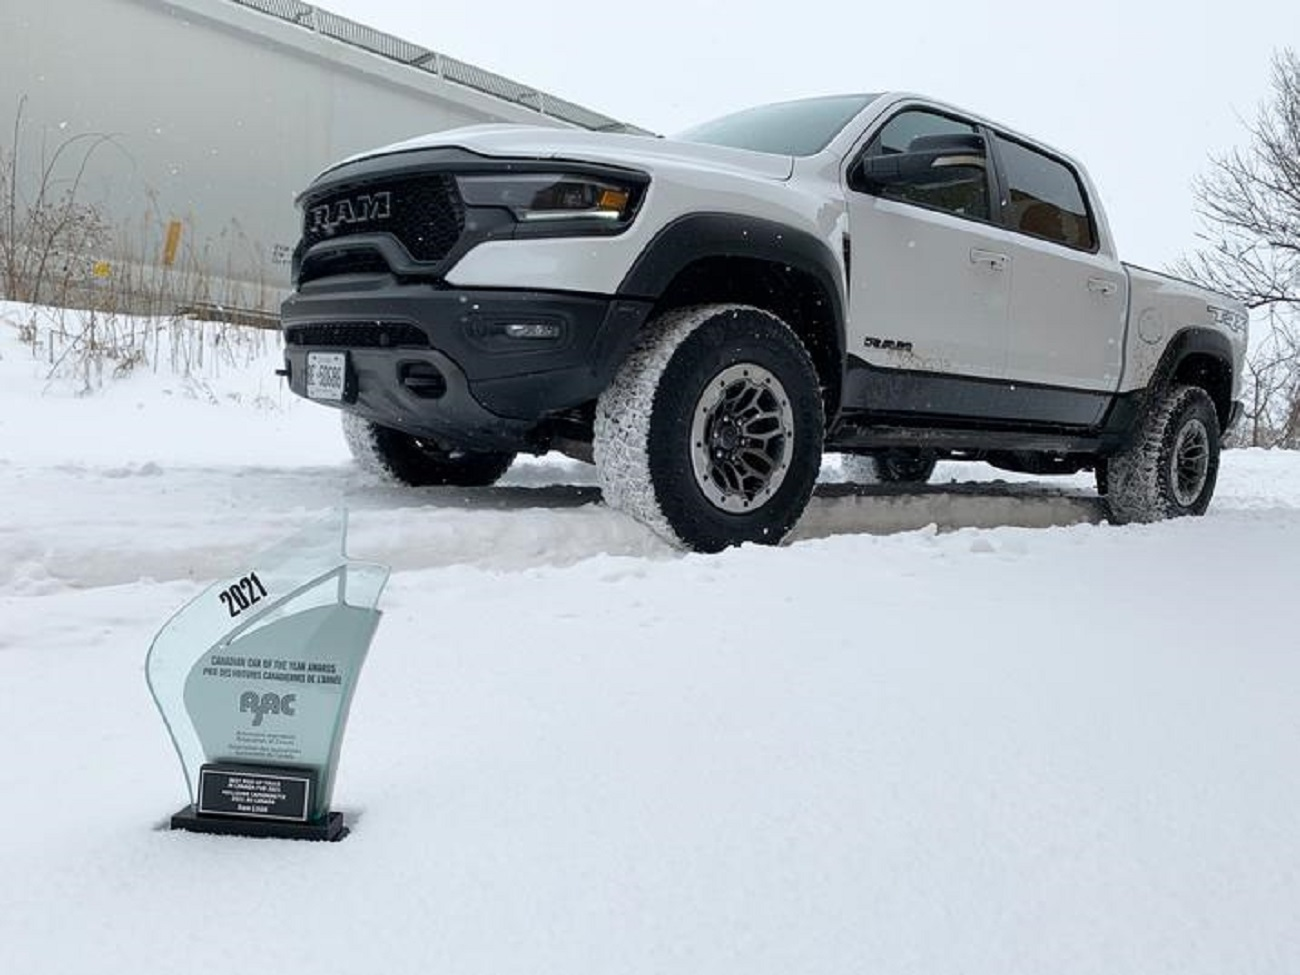 Ram 1500 eletto miglior pickup full-size 2021 dall'Automobile Journalists Association of Canada